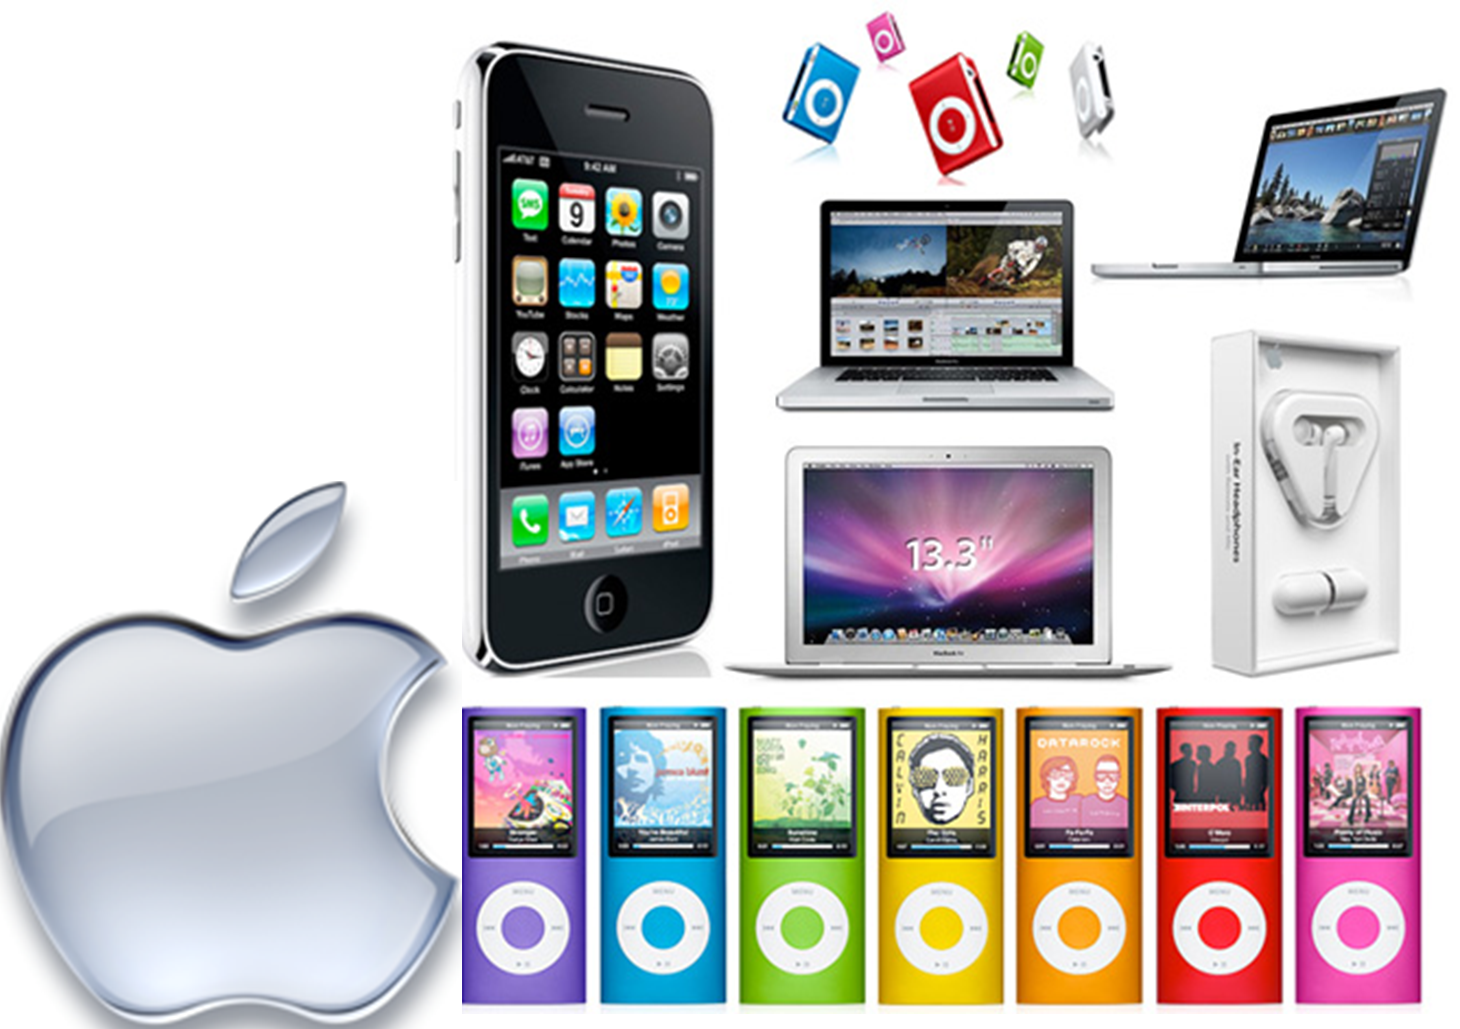 Apple products apple products png - Logo Analysis The Product